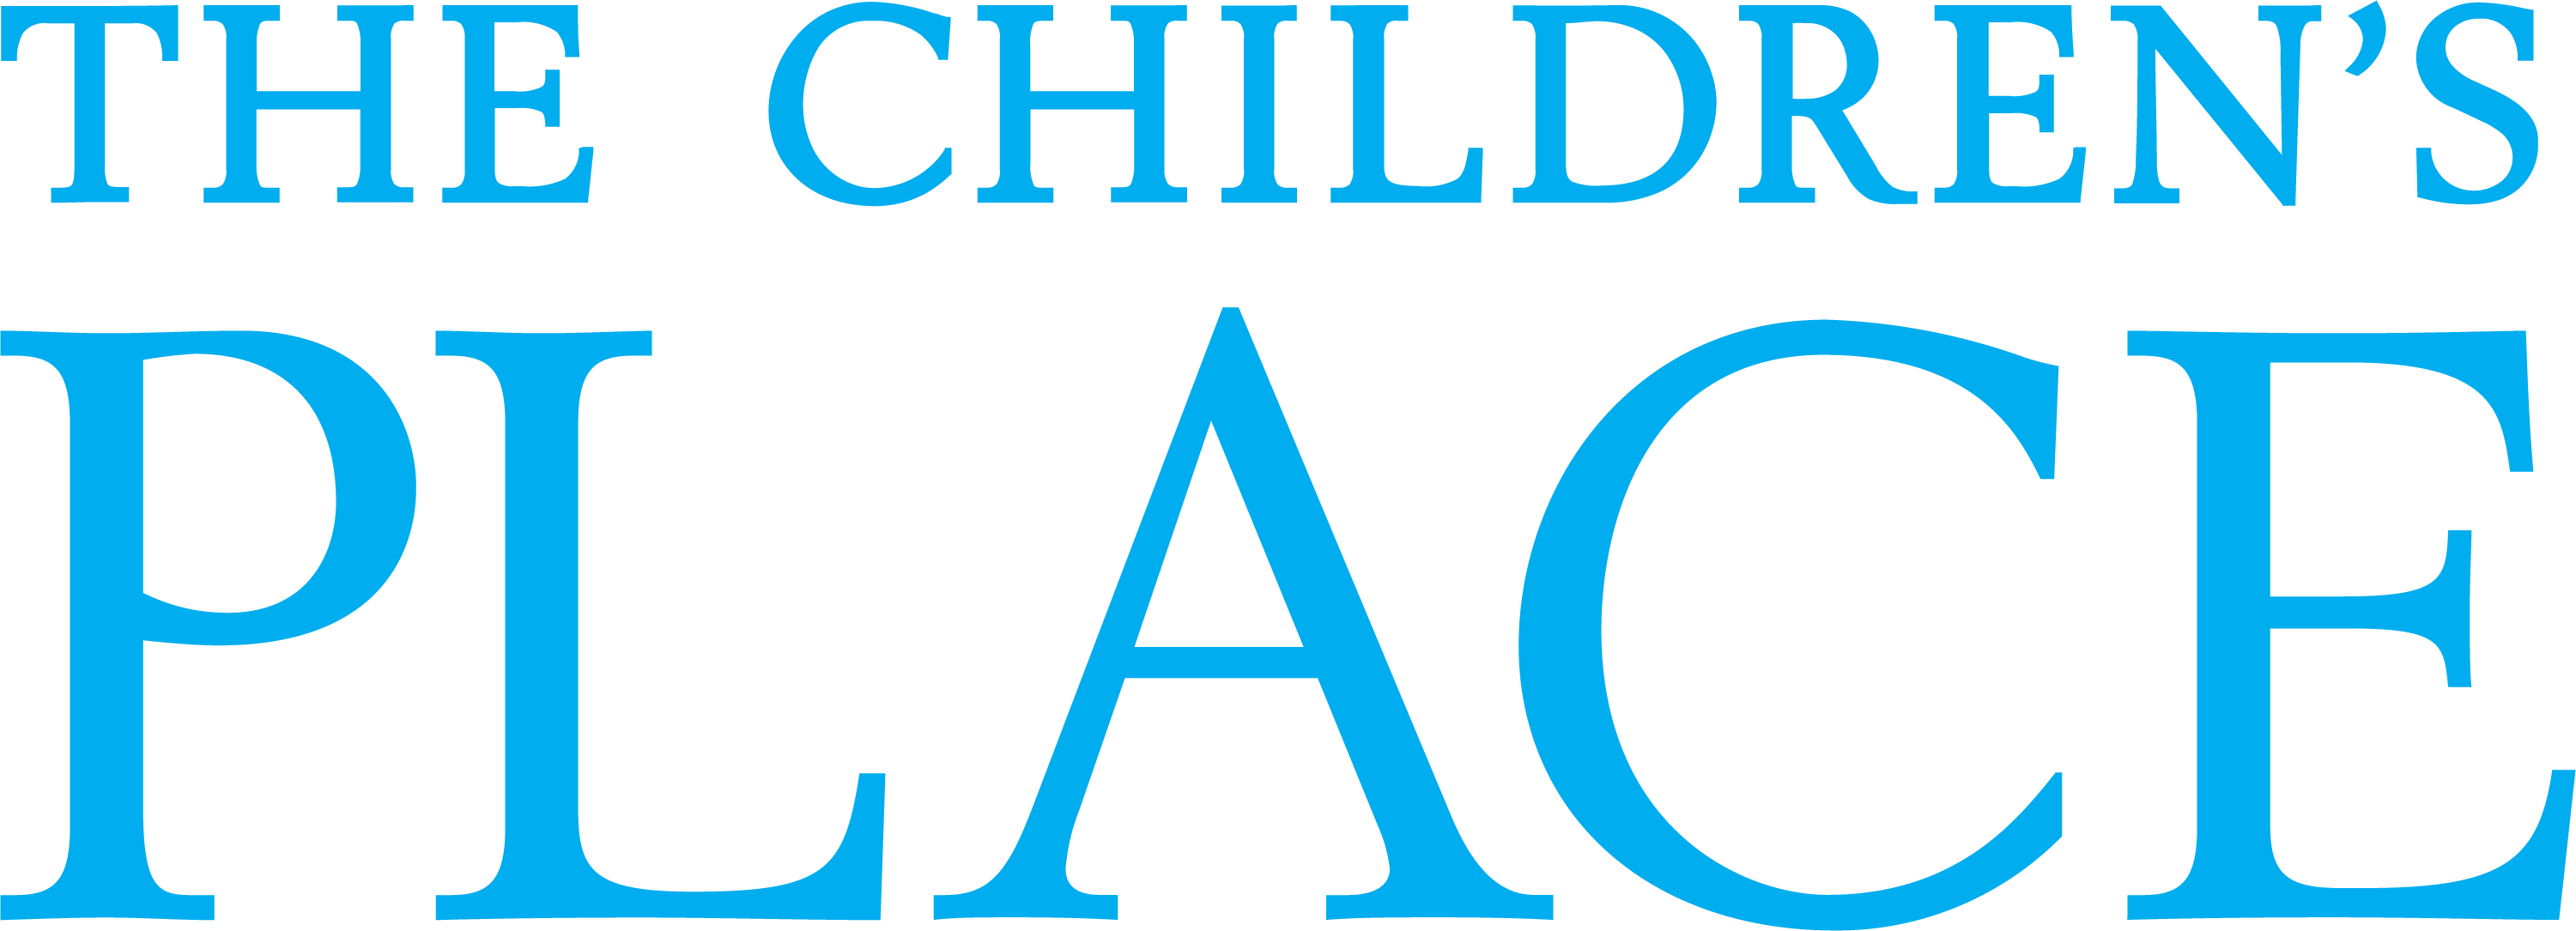 The Childrens Place Logo png